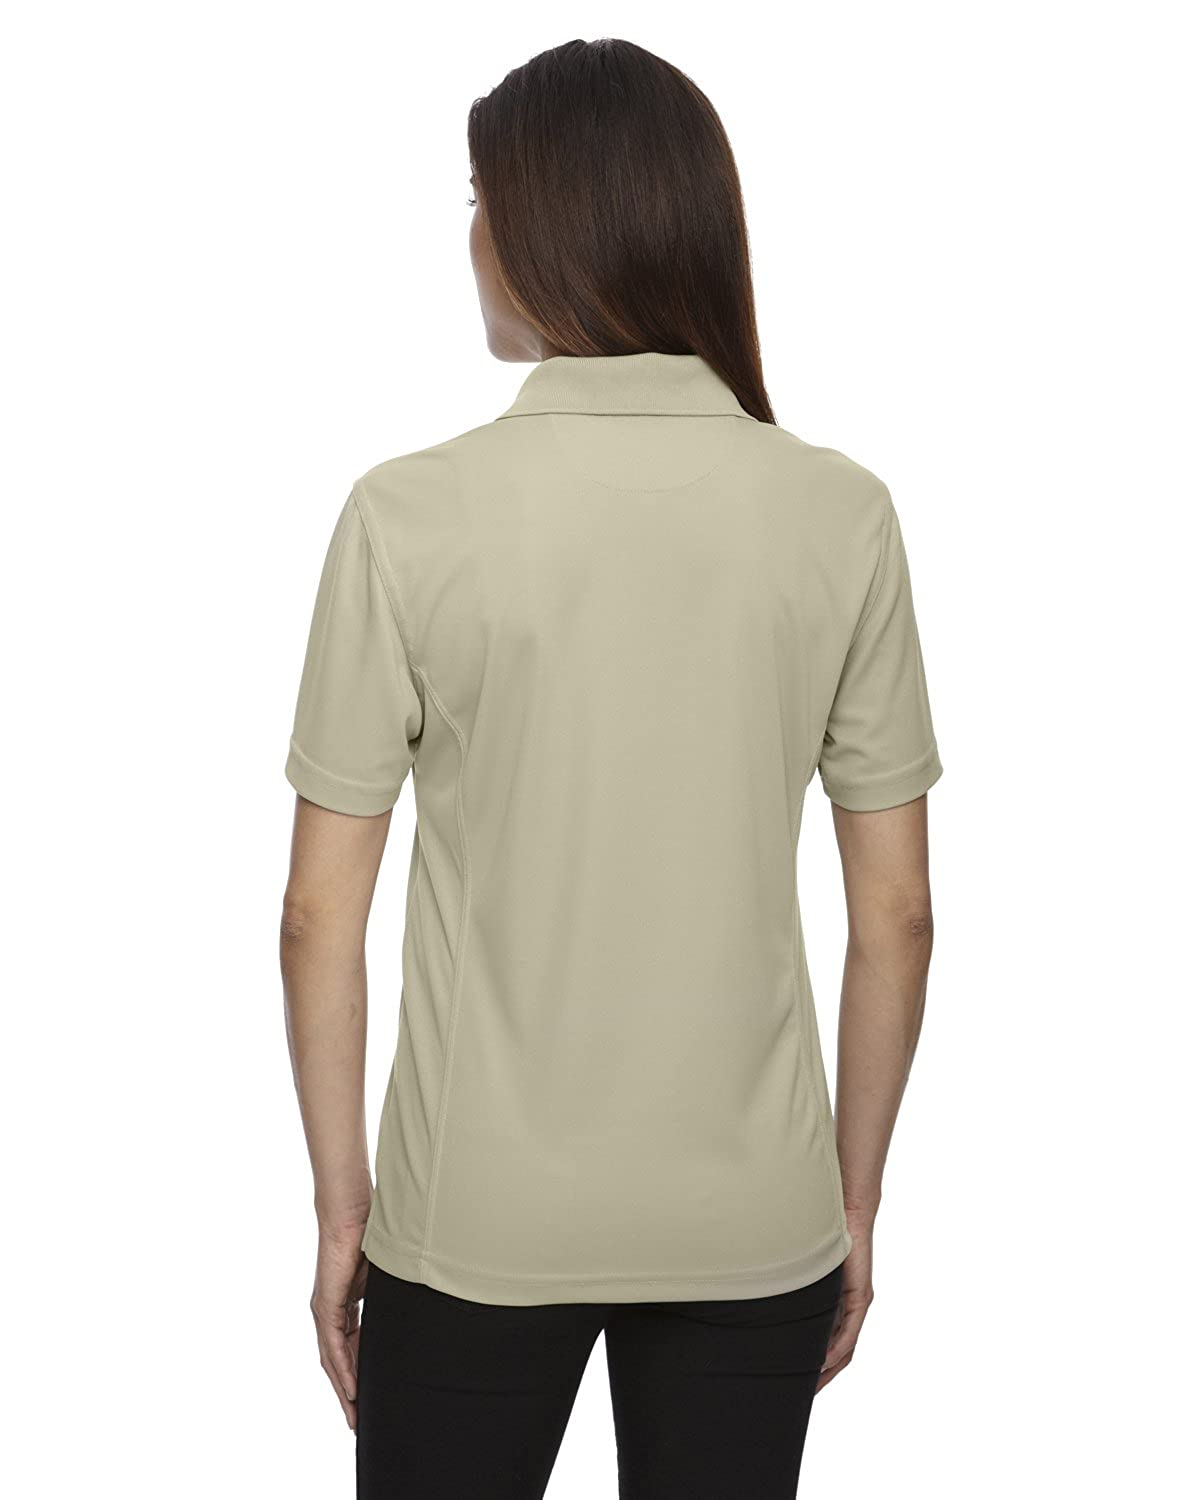 Extreme Womens Eperformance Jacquard Piqu/é Polo XL -BISCUIT 793 75055